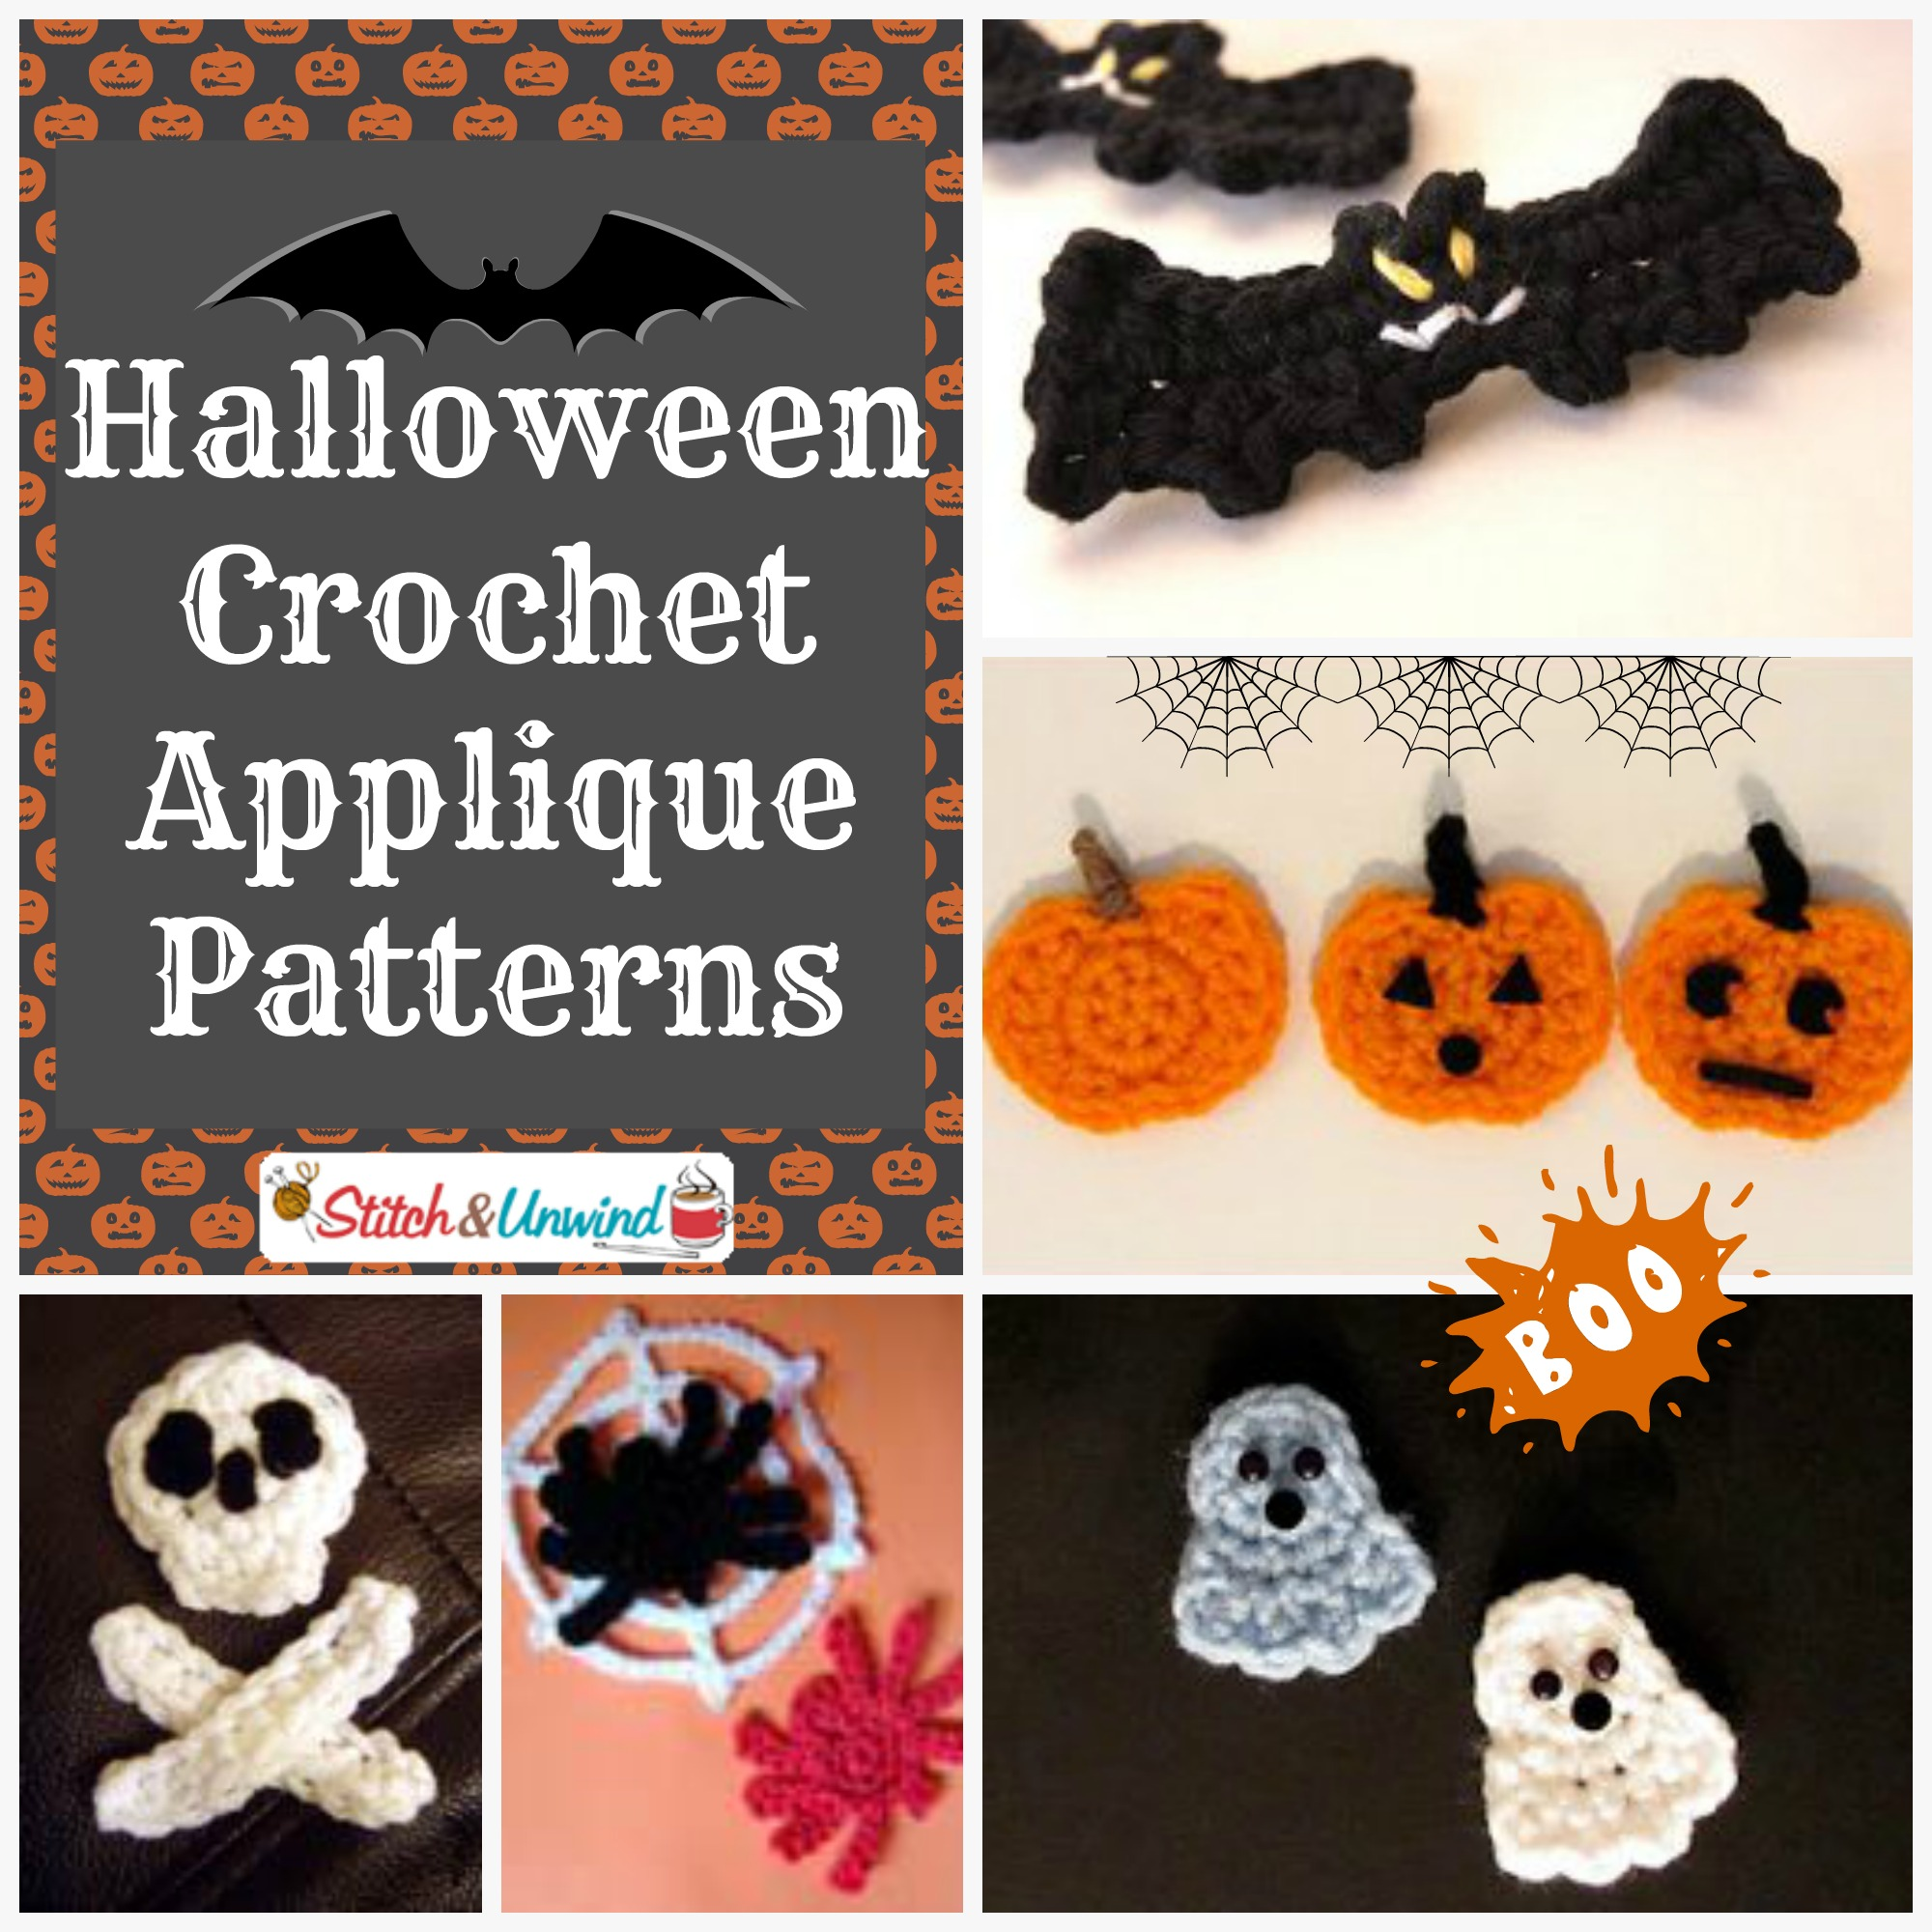 Free Crochet Patterns For Halloween : Add Flair To Your Afghans: Free Crochet Applique Patterns